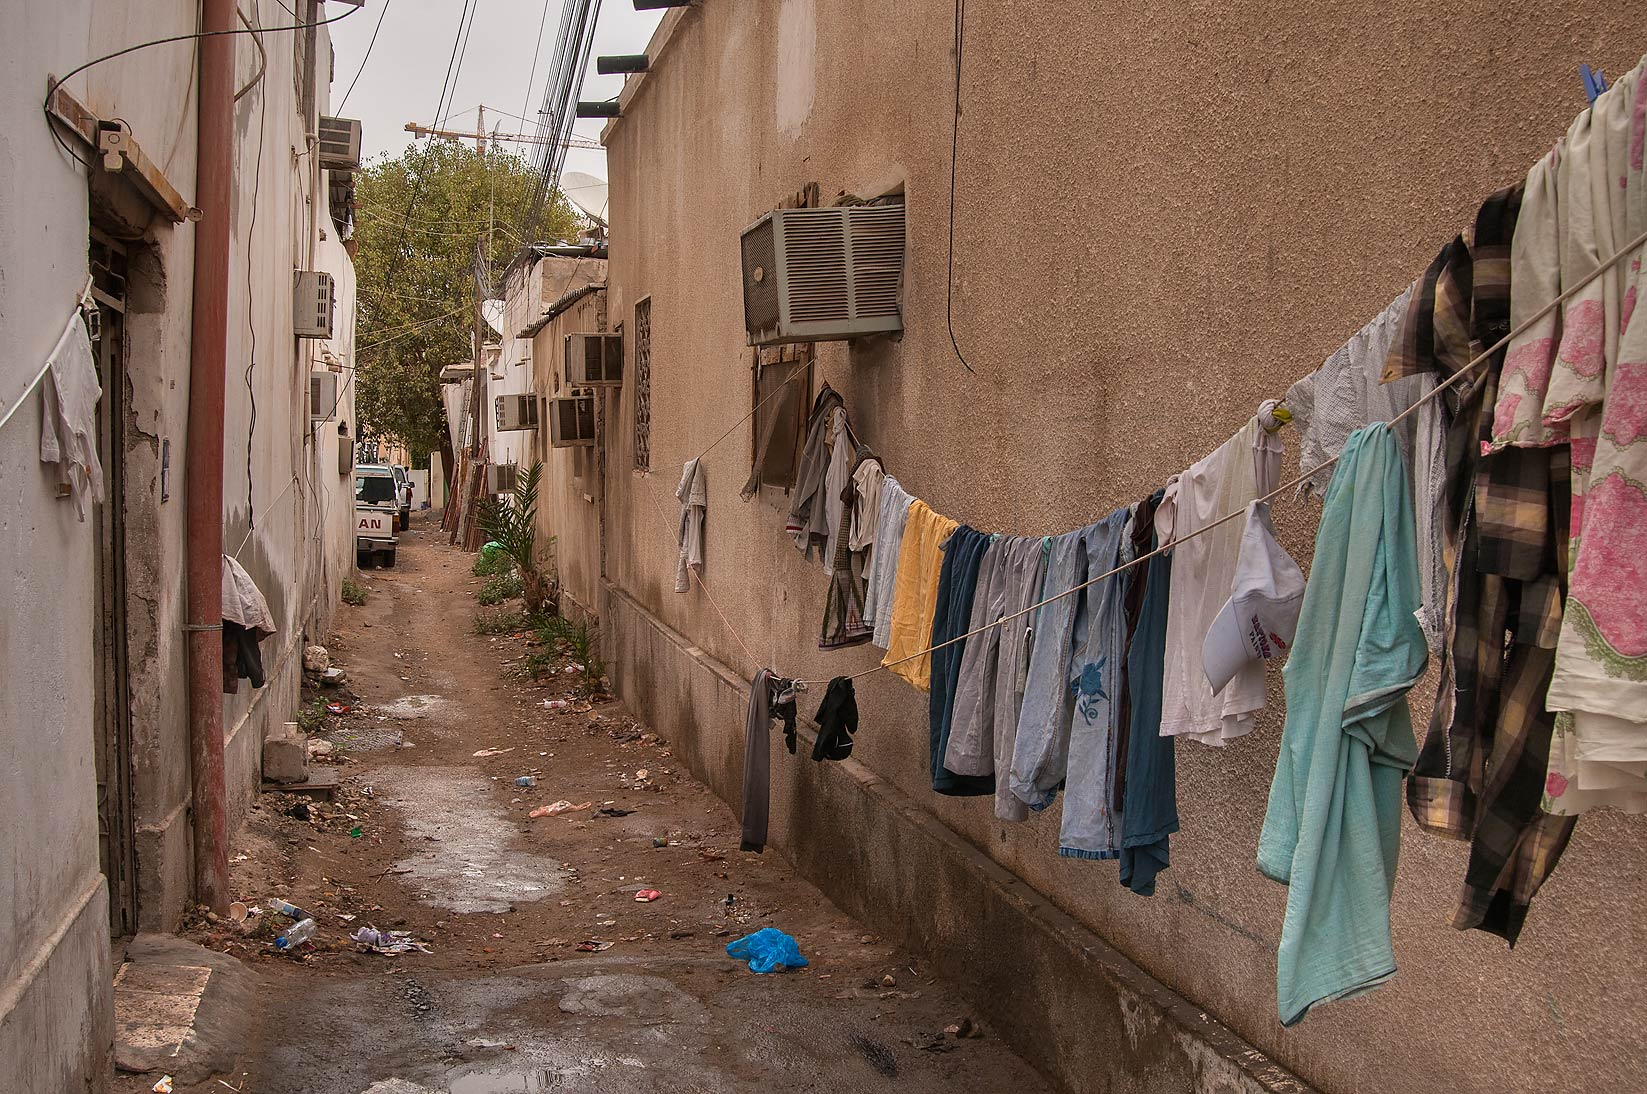 Laundry drying at rain in sikka near Umm Wishah St., Musheirib area. Doha, Qatar